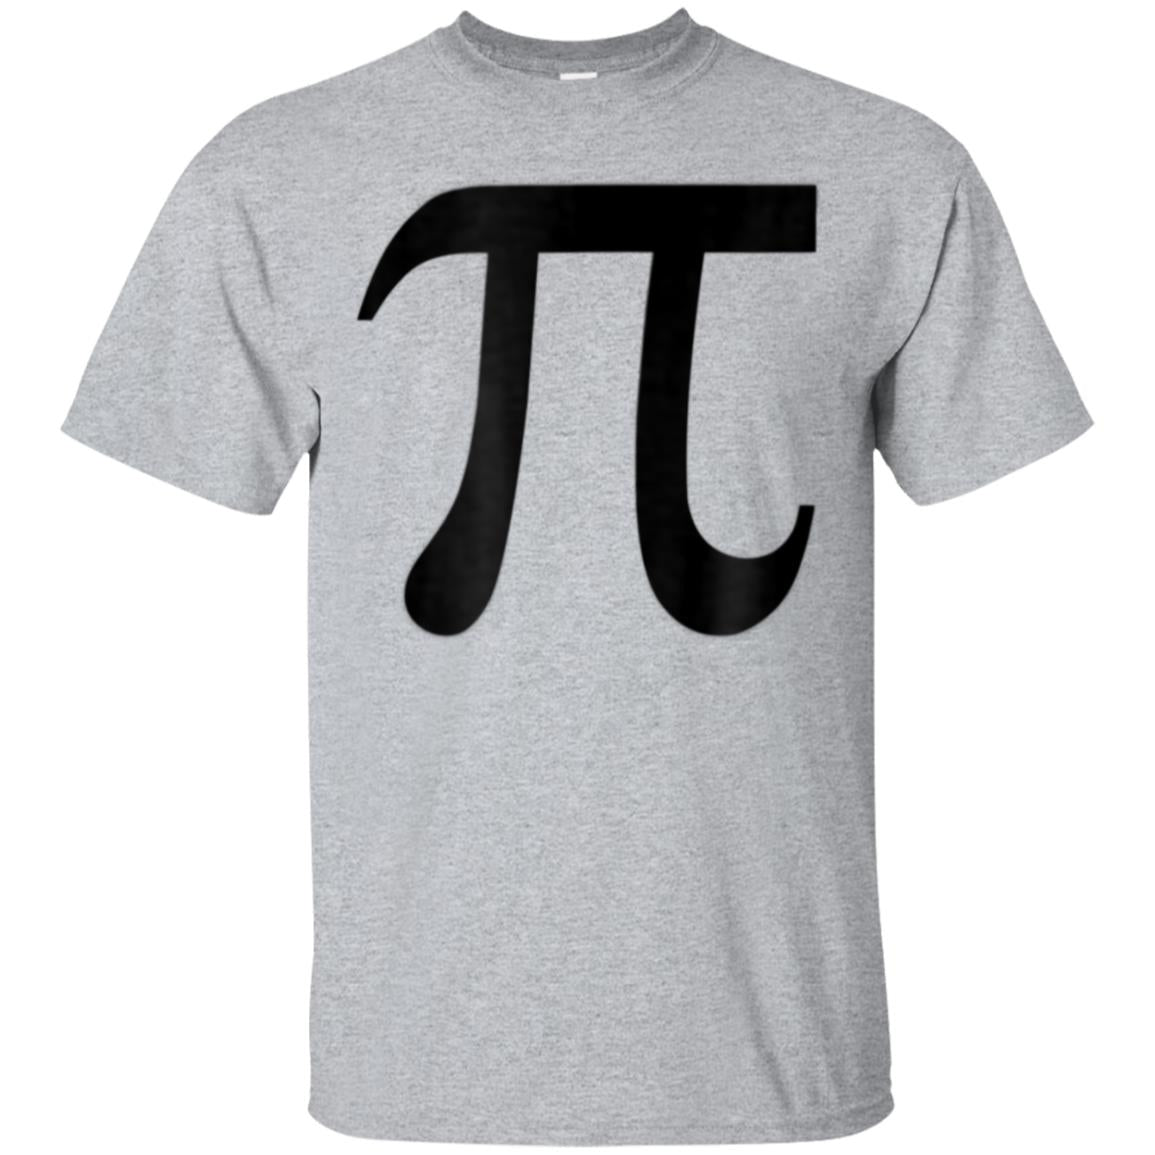 0c5c0b70 Awesome pumpkin pi math algebra symbol funny halloween t shirt ...